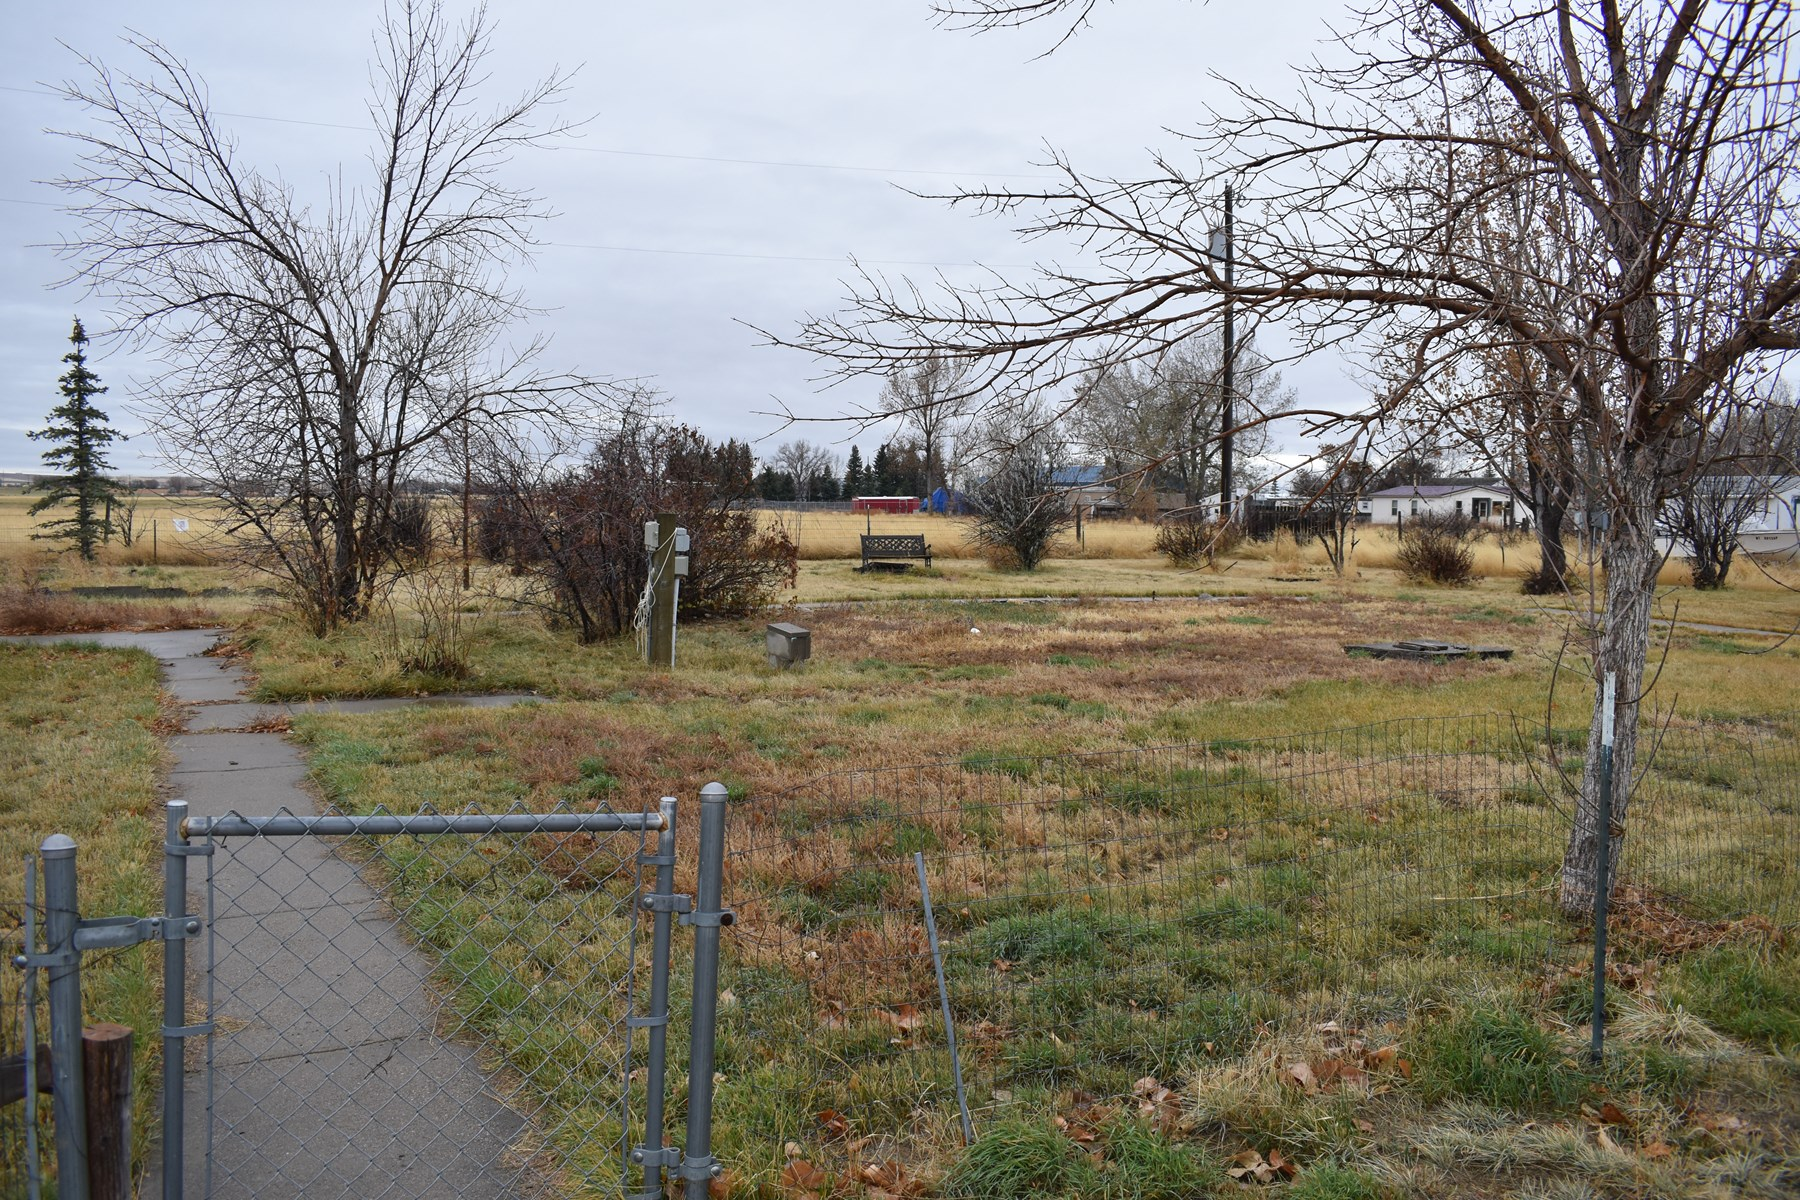 Building lot for sale, lot in Conrad< MT